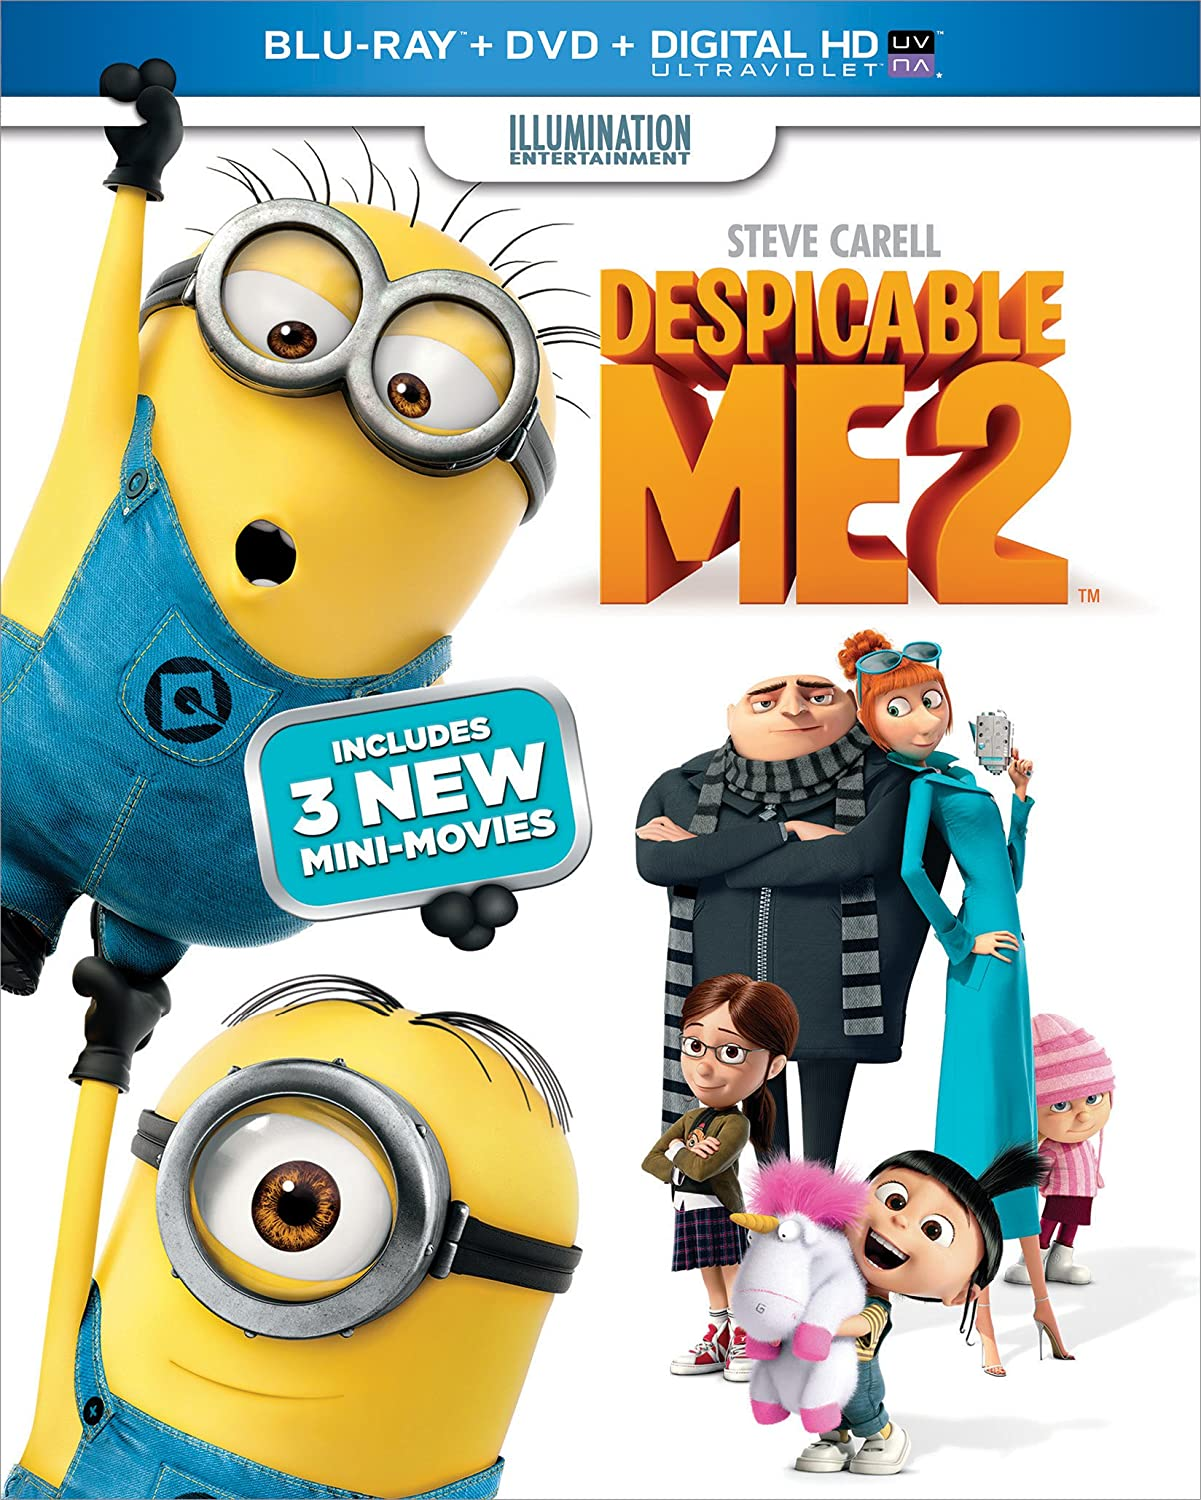 Despicable Me 2 (Blu-ray + DVD + Digital HD)